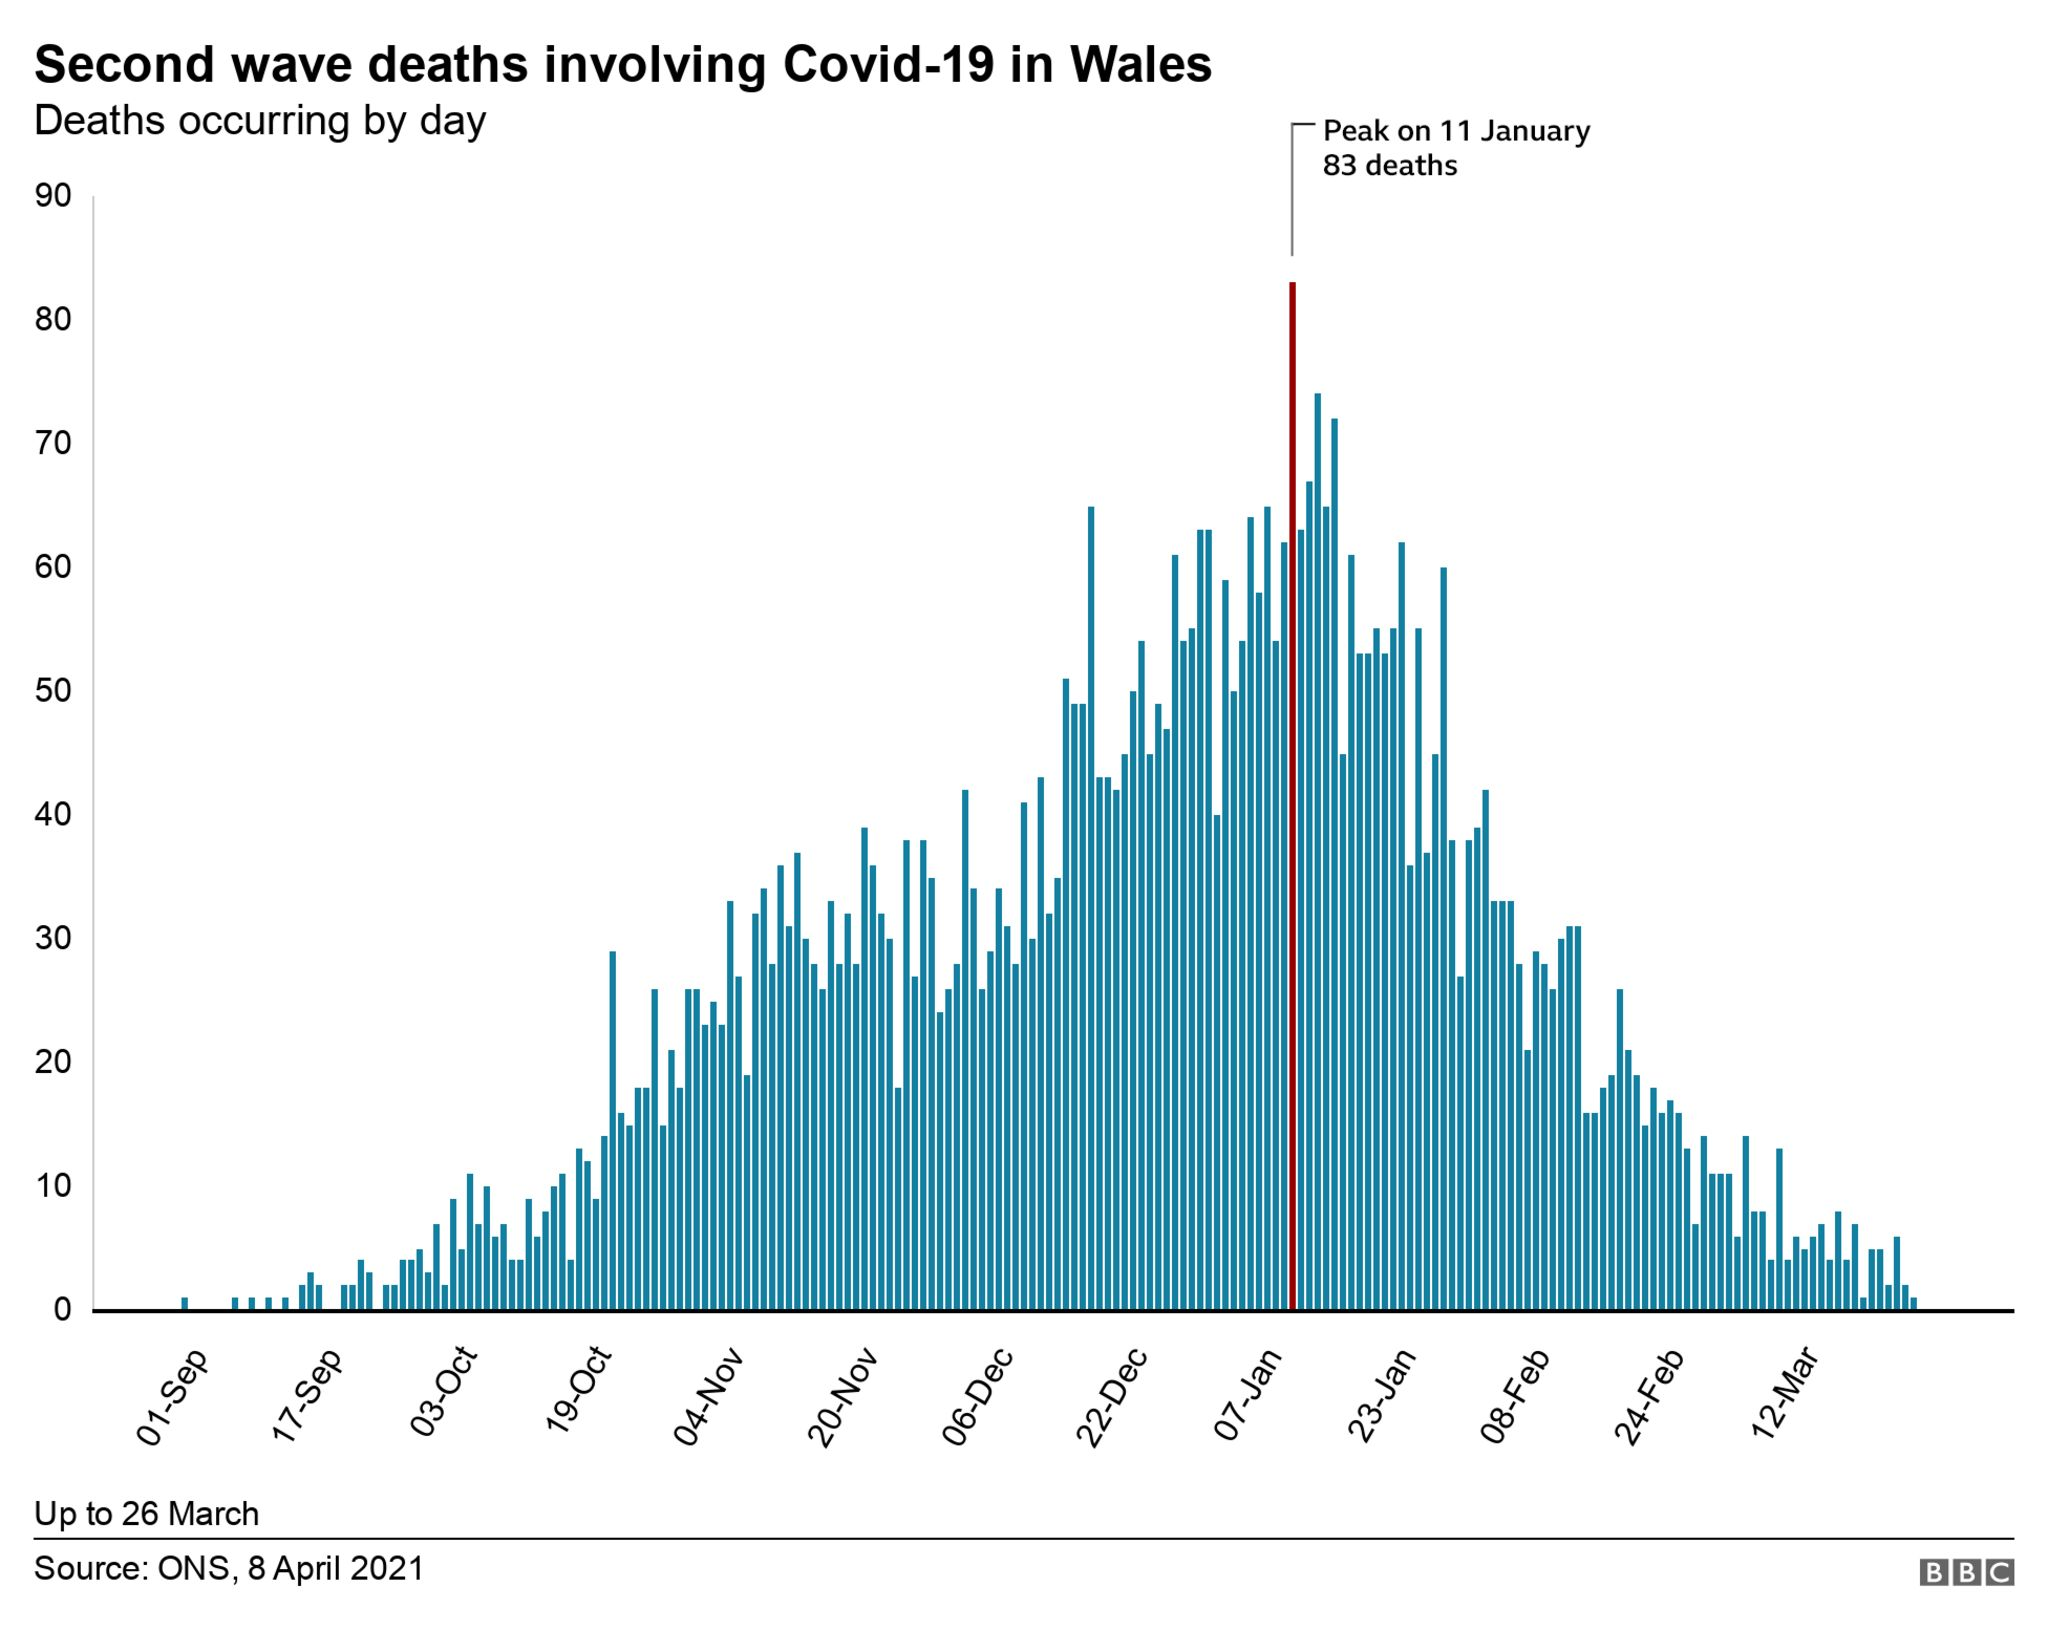 Second wave deaths chart